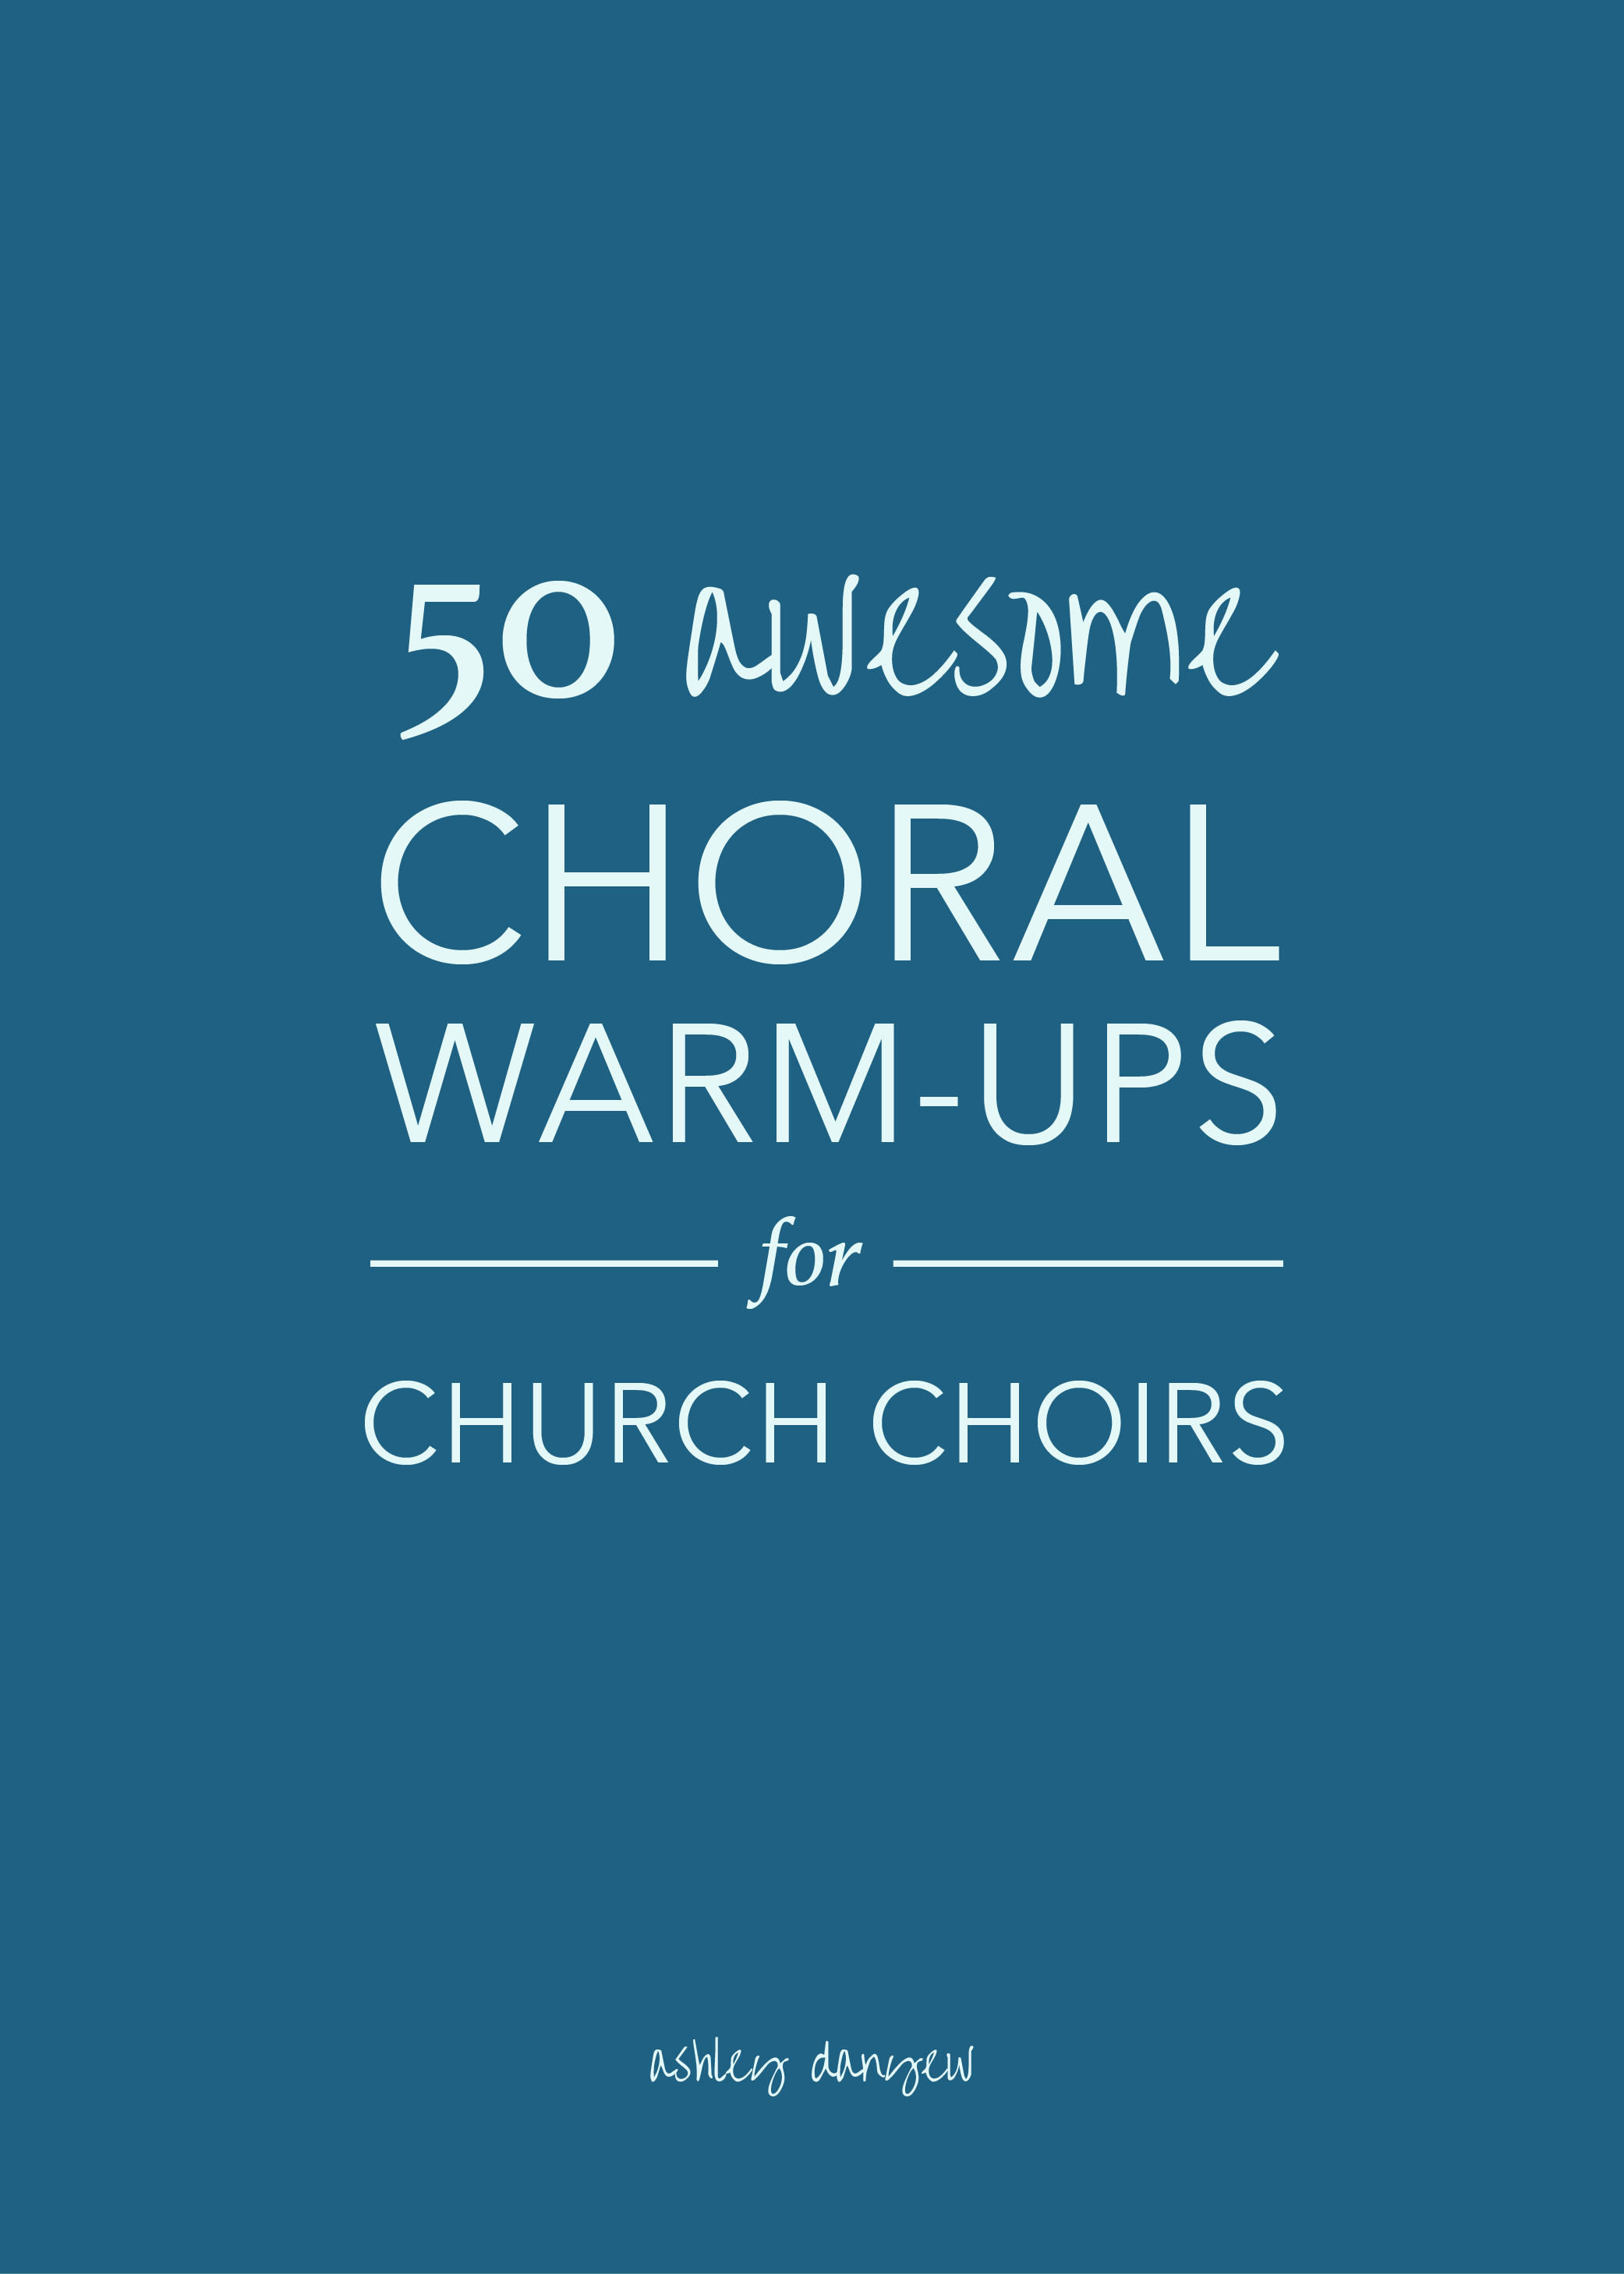 Copy of 50 Awesome Choral Warm-Ups for Church Choirs